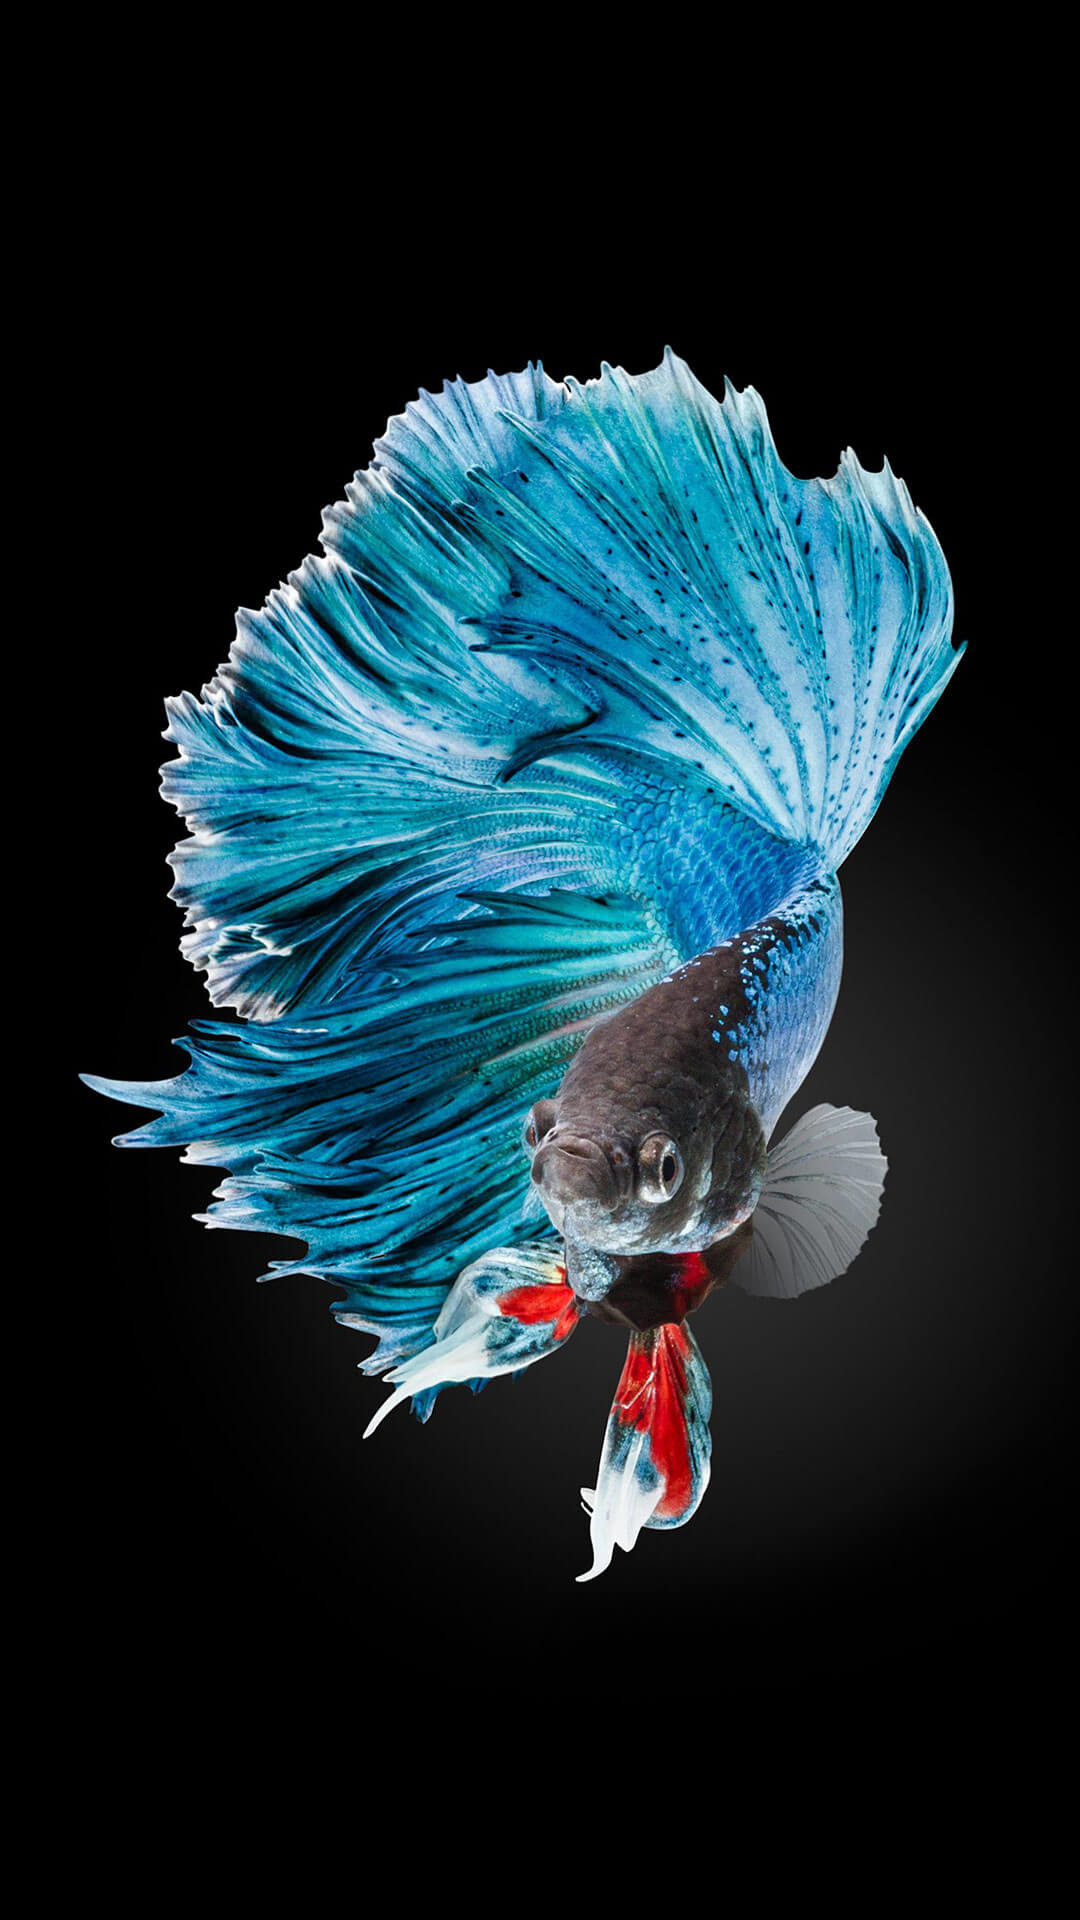 1080x1920 Betta Fish Wallpaper iPhone 6 And iPhone 6s HD